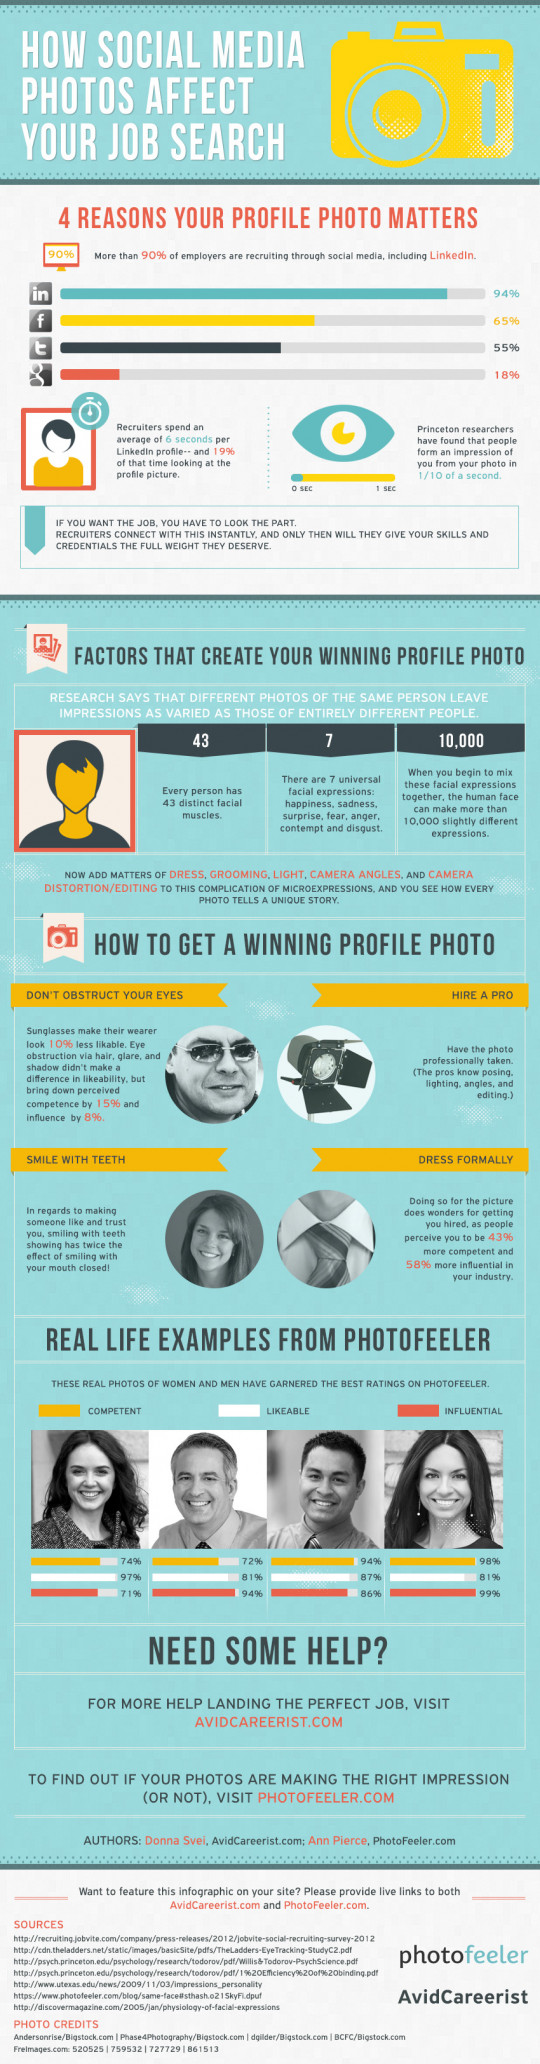 http://thumbnails.visually.netdna-cdn.com/top-3-factors-for-a-winning-linkedin-profile-photo-according-to-science_5502f57906d95_w540.jpg